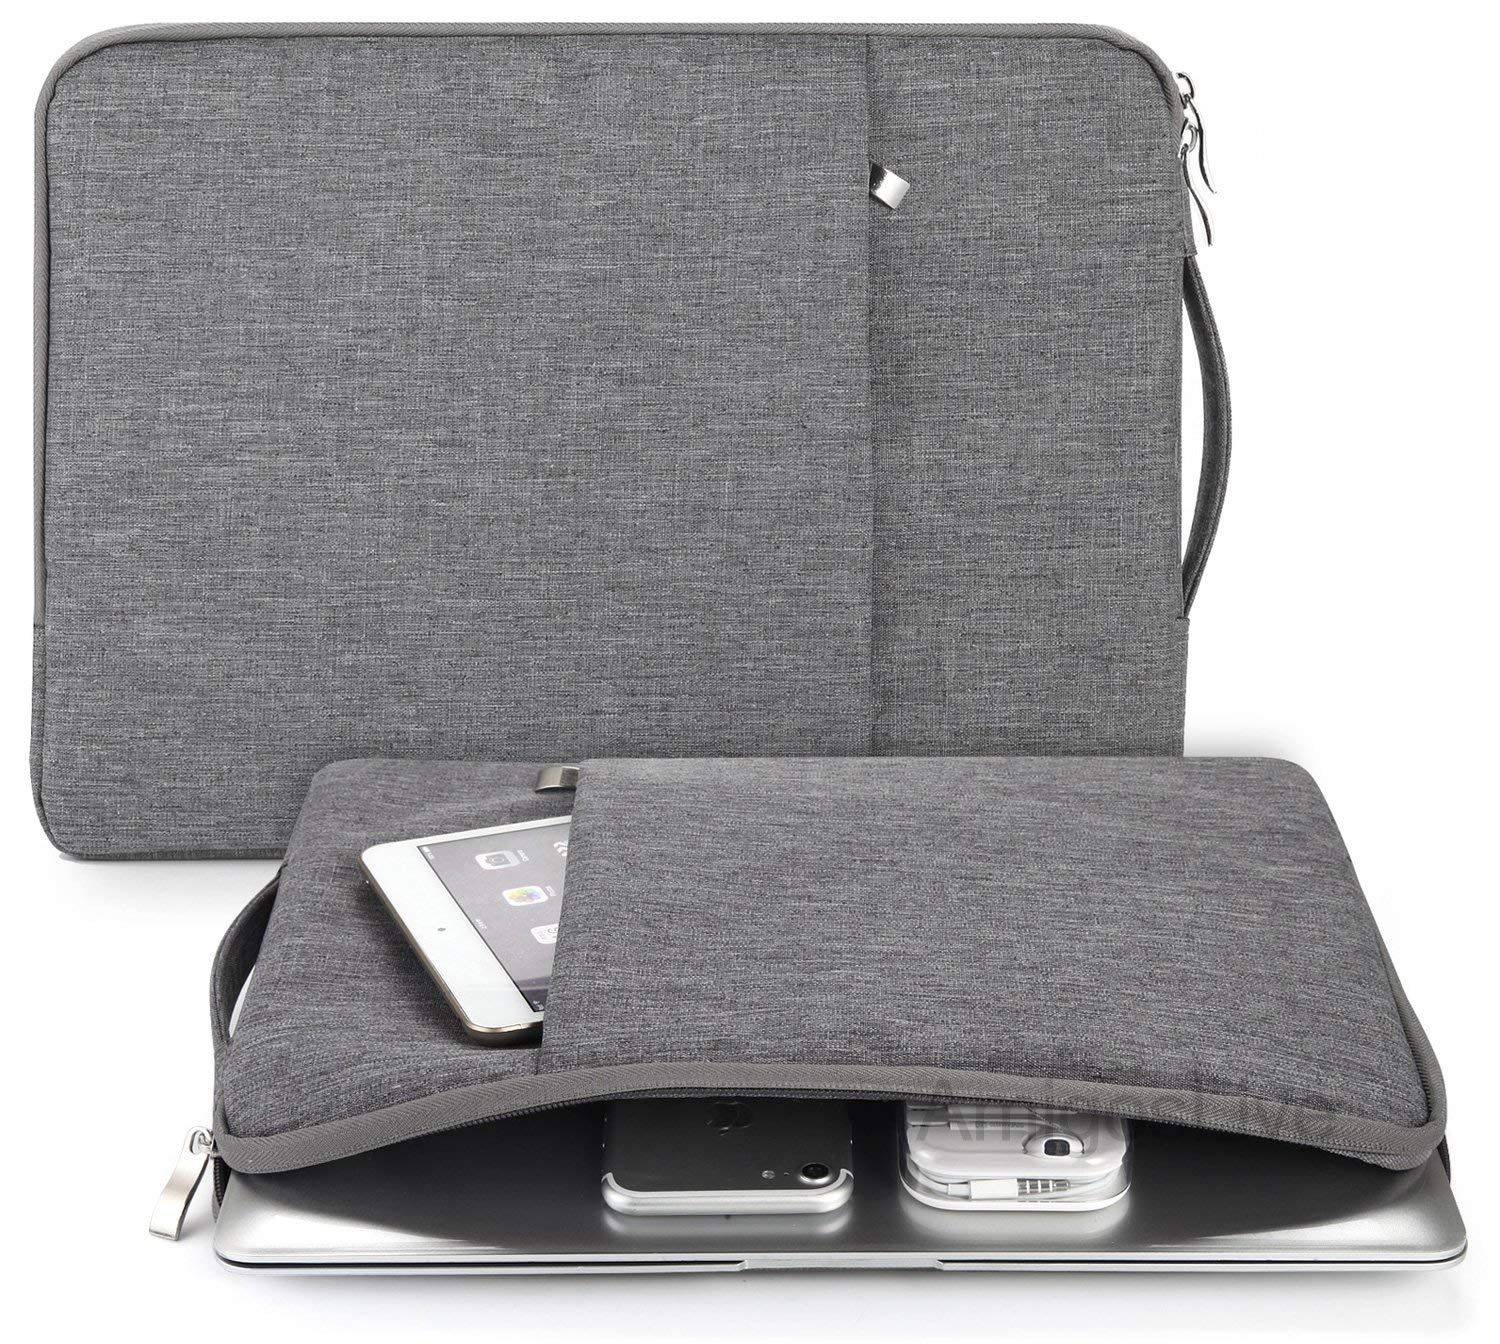 Handbag Sleeve Case For Microsoft Surface Pro 4 3 12.3